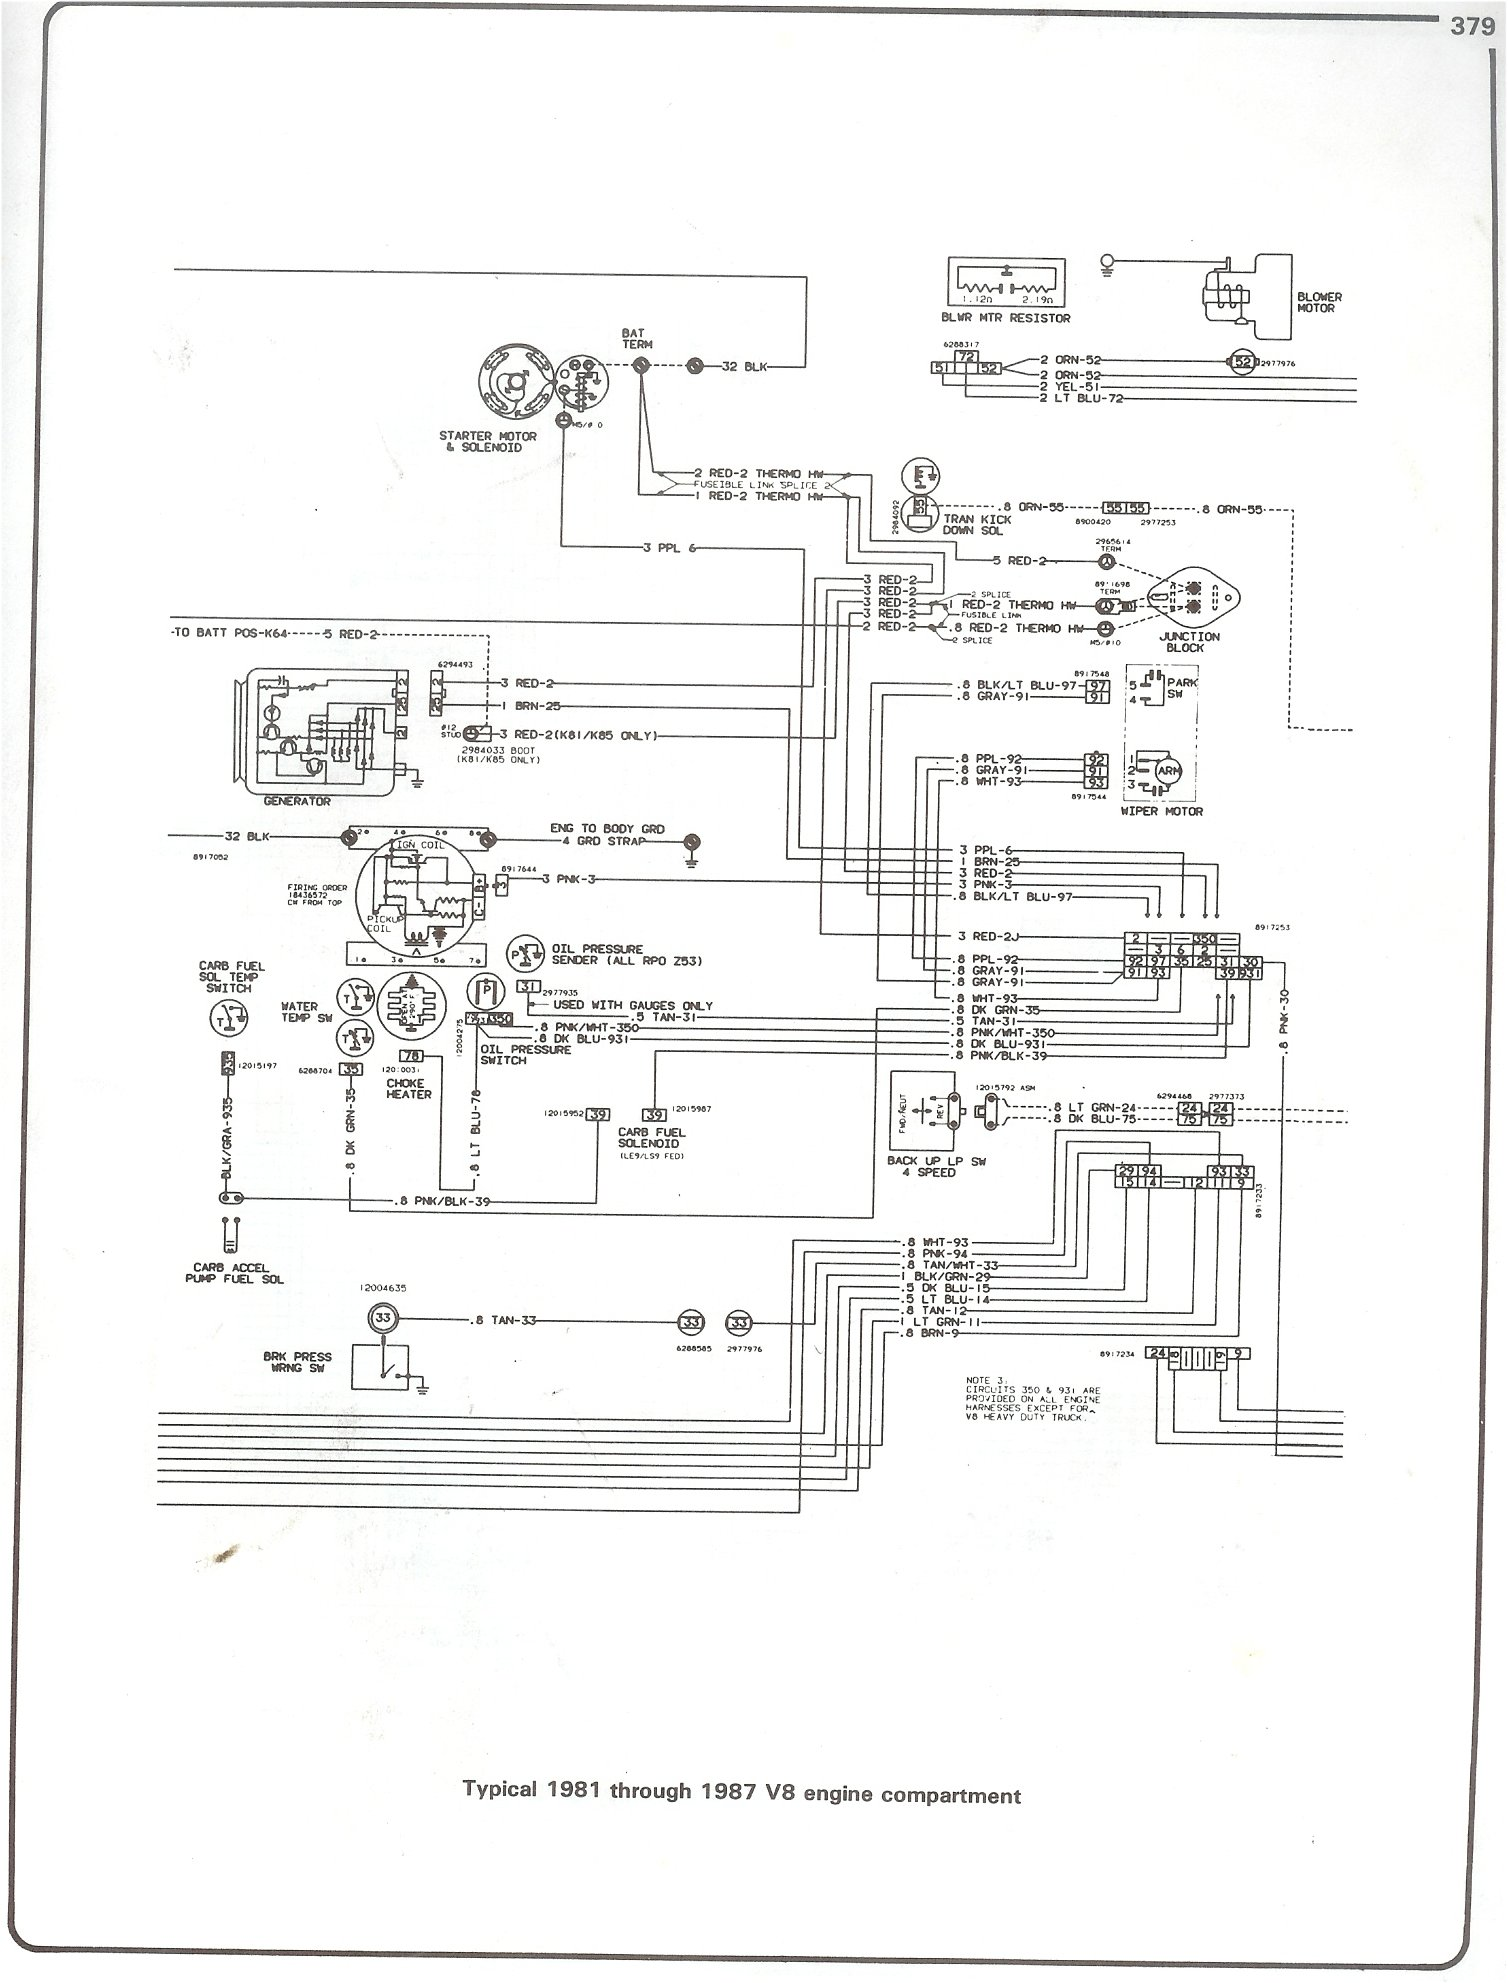 81 87_V8_engine complete 73 87 wiring diagrams 1985 chevy c10 fuse box diagram at panicattacktreatment.co